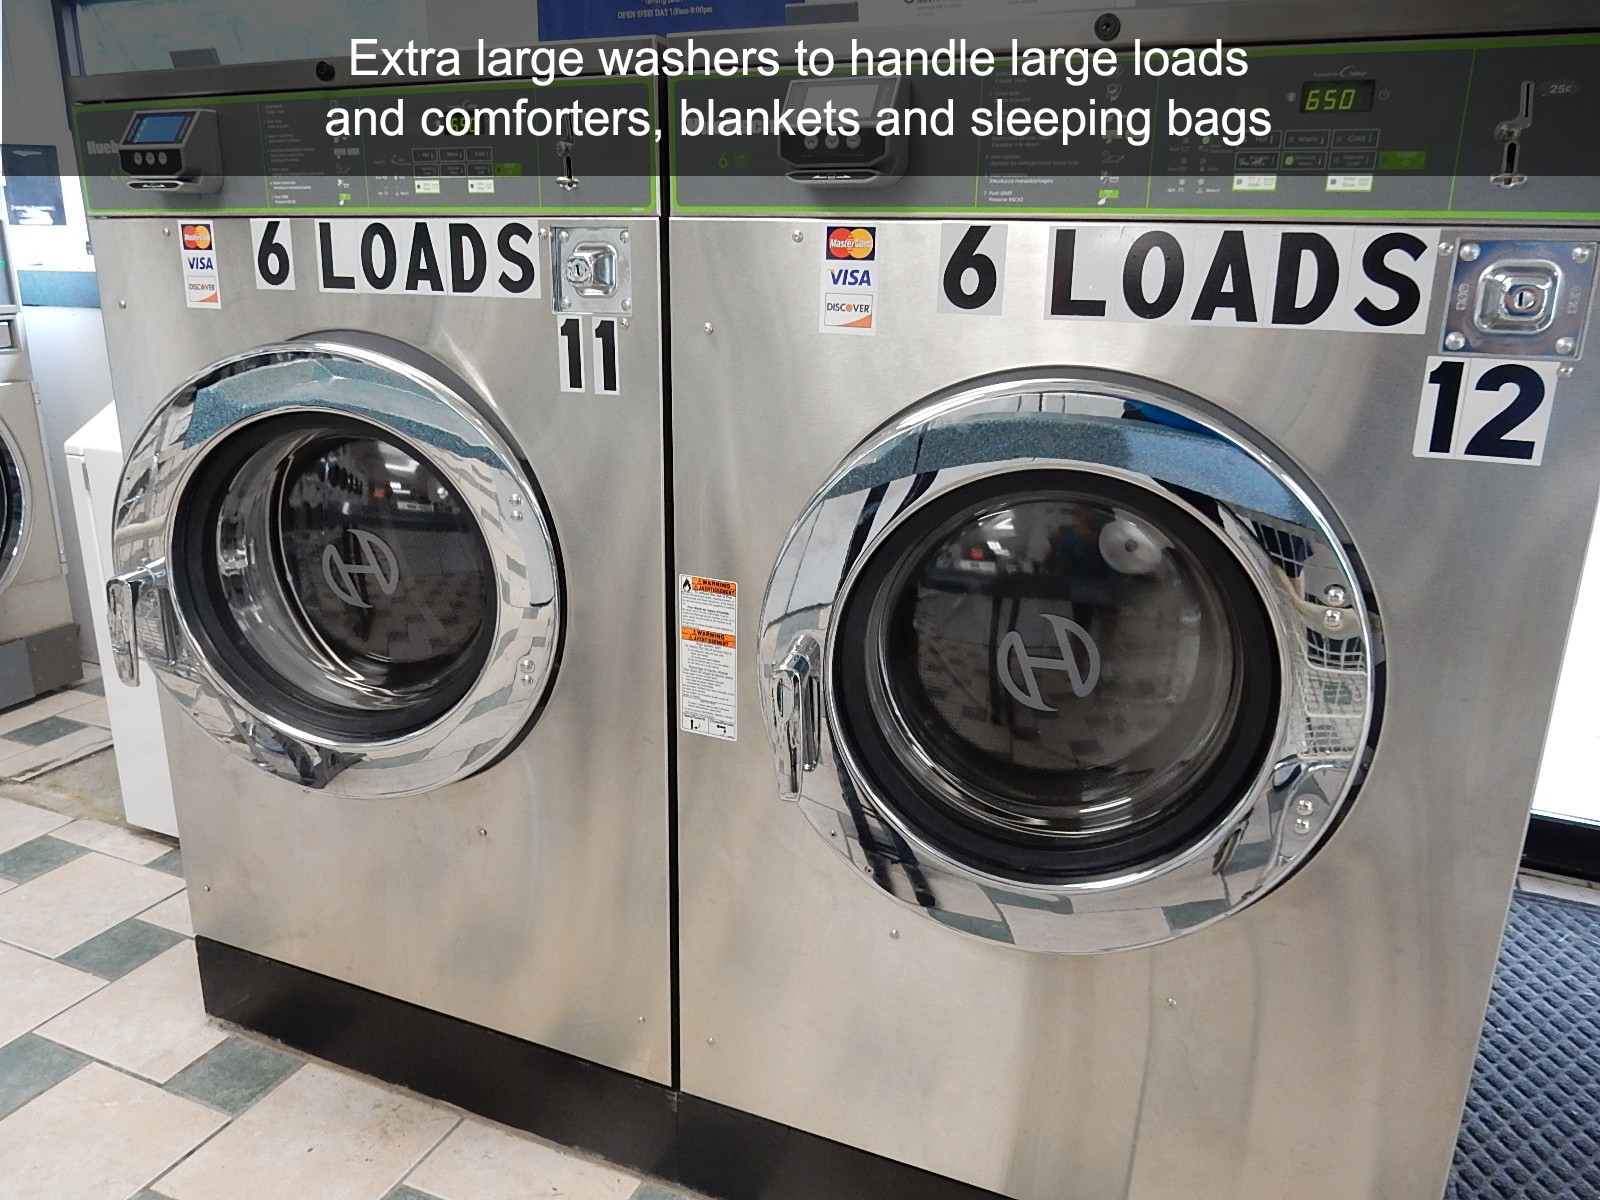 Extra large washers to handle large loads and comforters, blankets and sleeping bags